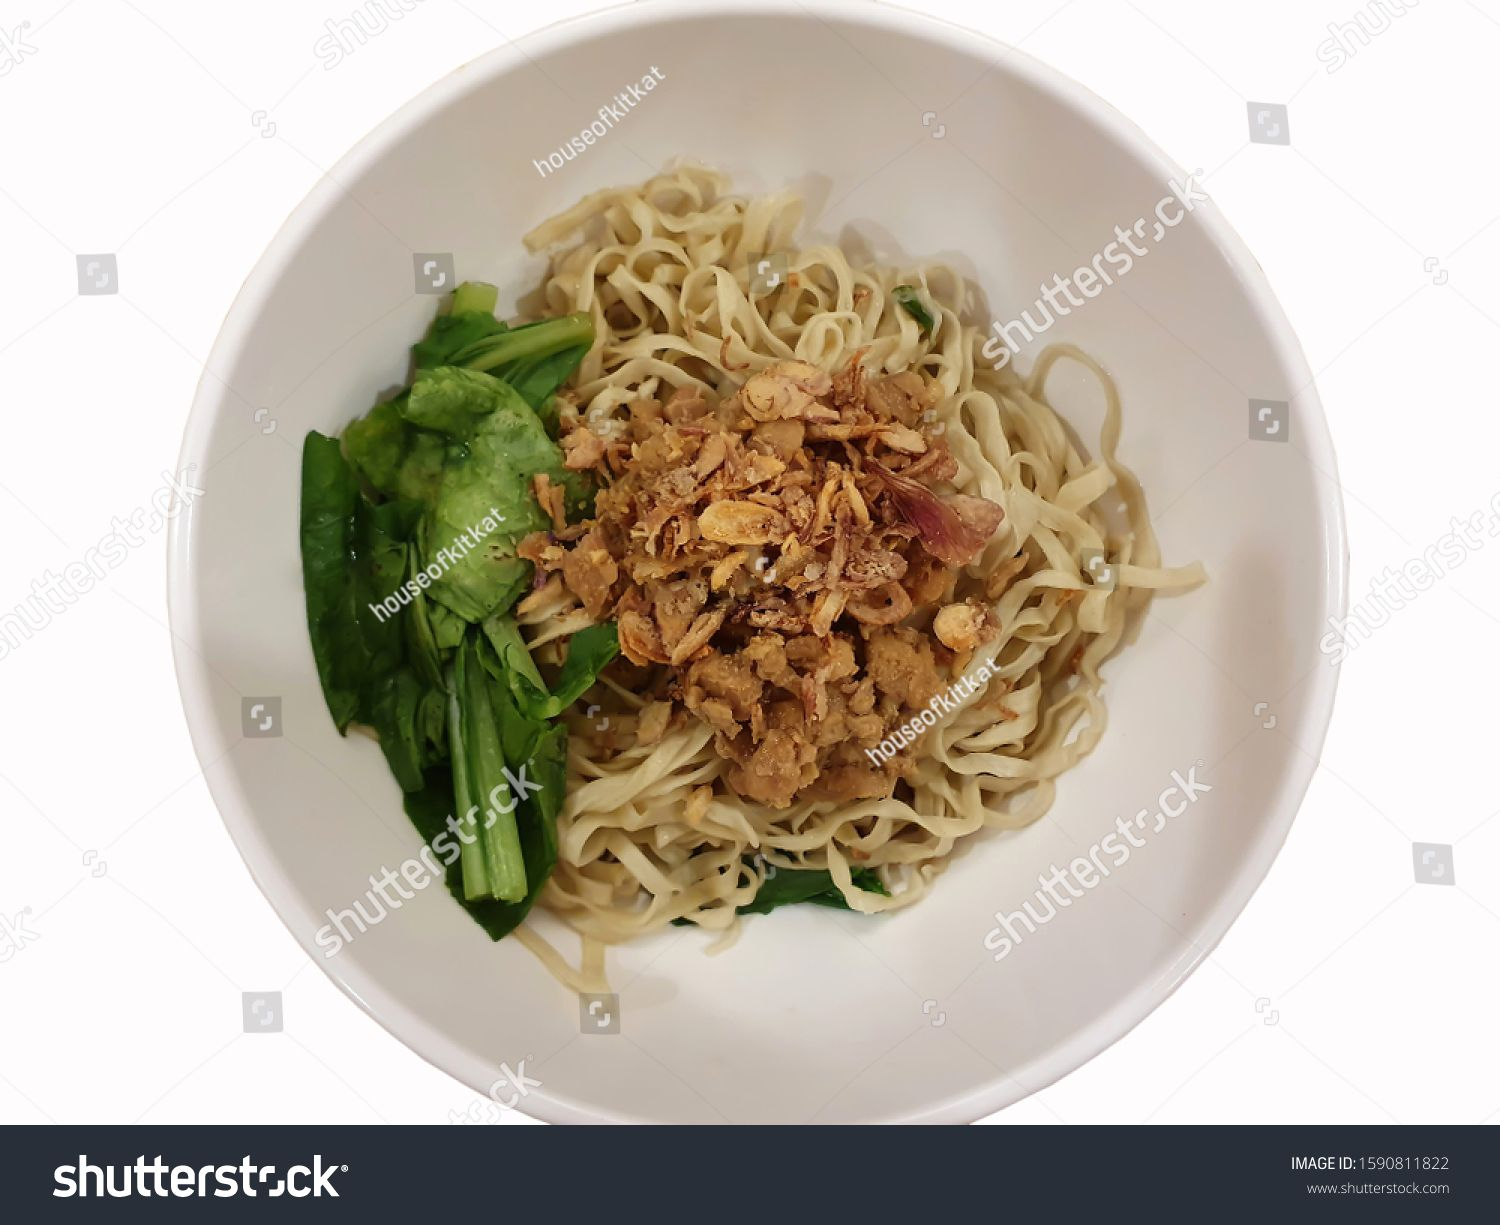 Indonesian food named mie ayam on white bowl #Sponsored , #SPONSORED, #named#food#Indonesian#mie